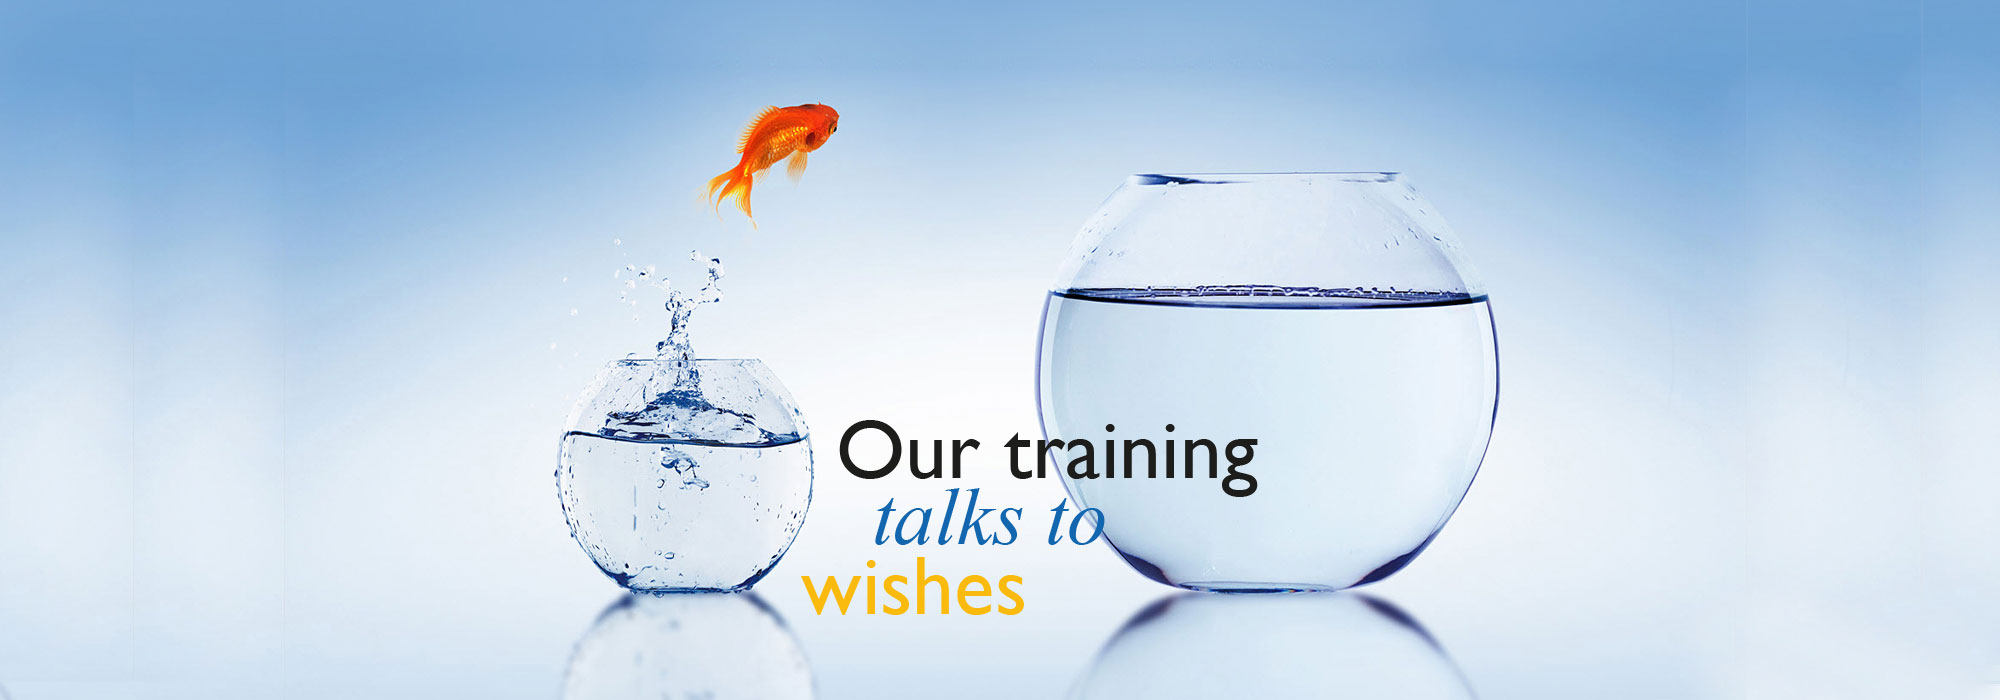 our training talk to wishes